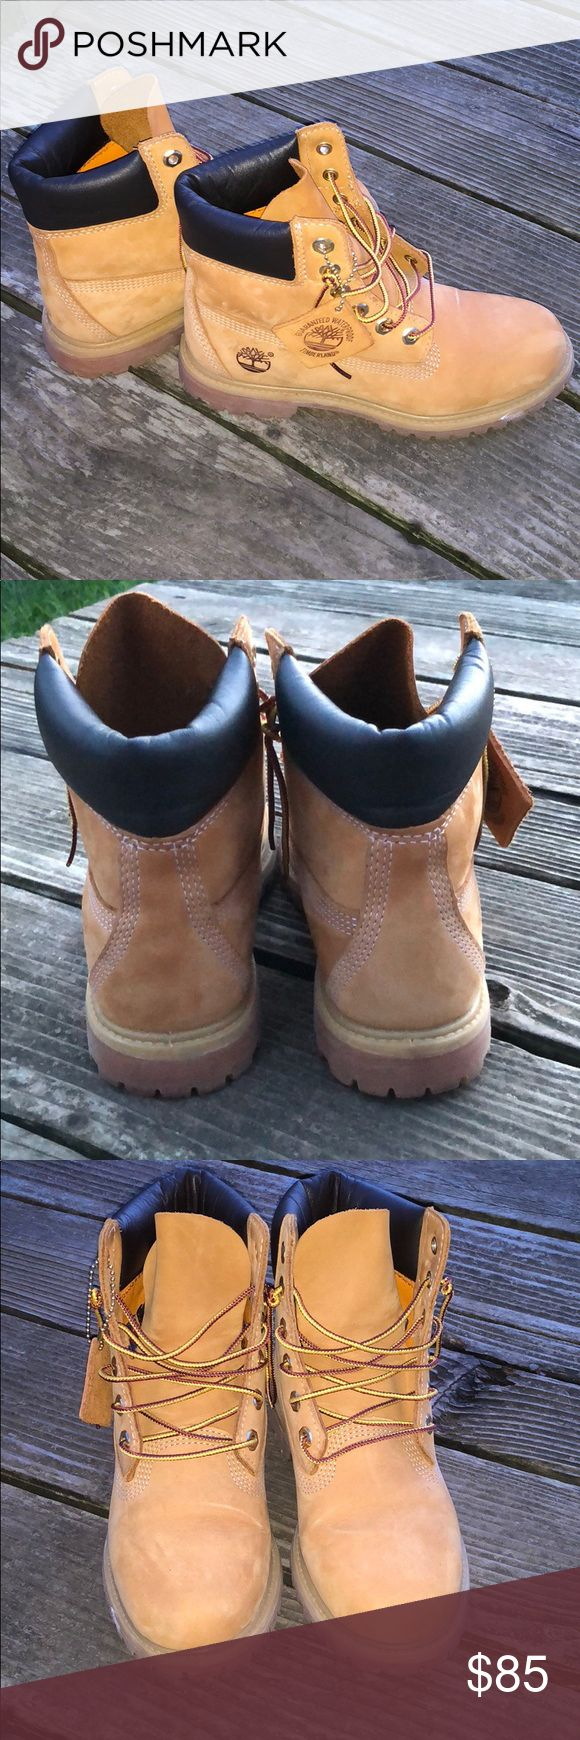 Timberland premium boot. Color: wheat Very cute and casual timberland boots. Love them so much but sadly out grew them. There is also a light gray scratch on the boot. Timberland Shoes Lace Up Boots